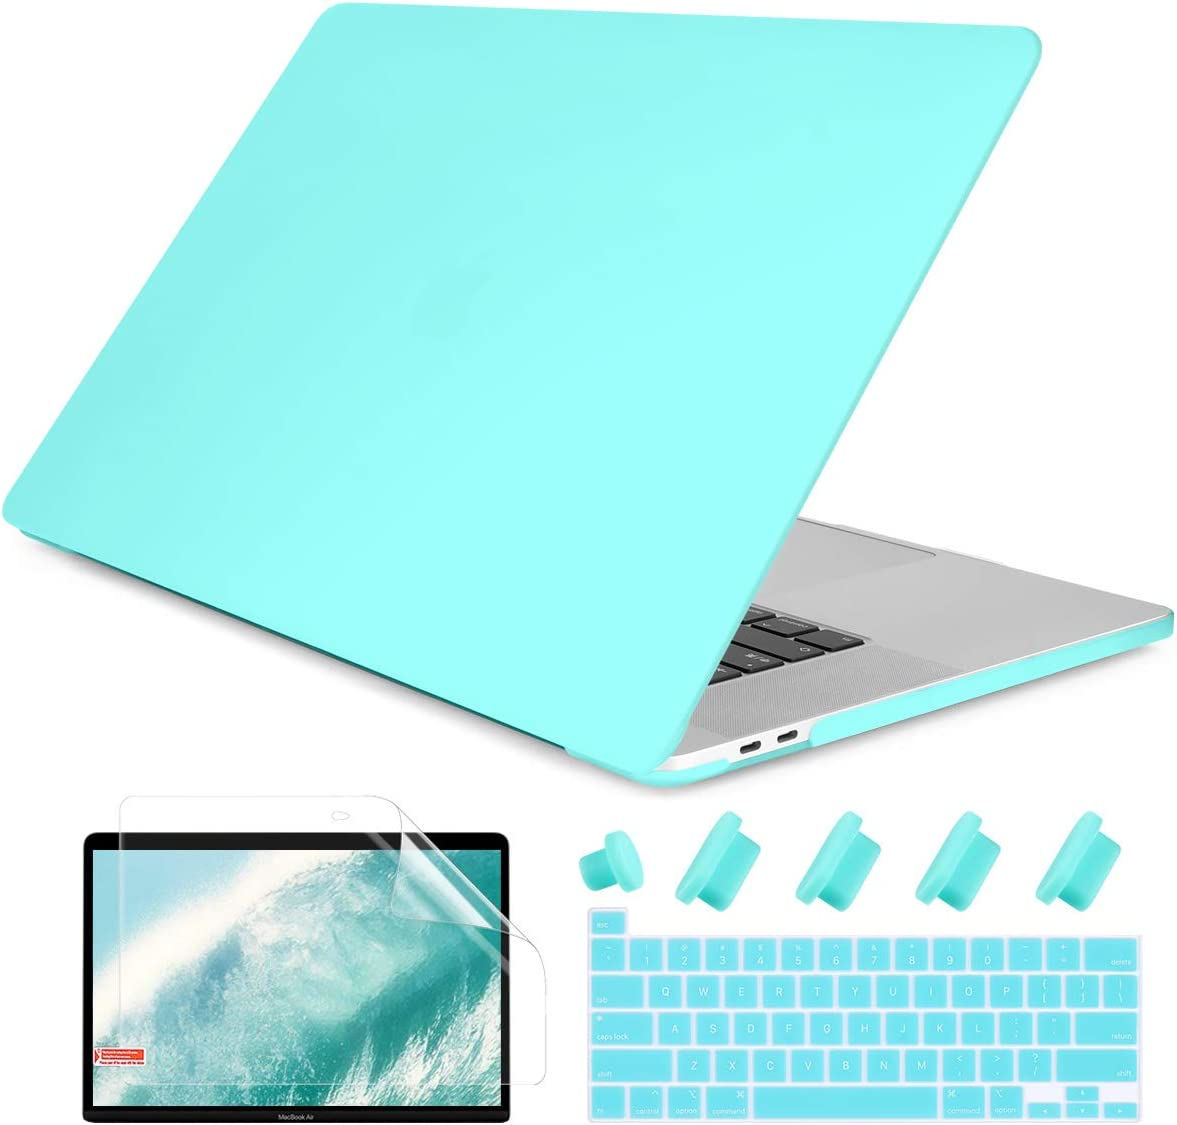 Dongke MacBook Pro 13 inch Case 2019 2018 2017 2016 Release A2159 A1989 A1706 A1708, Frosted Matte Plastic Hard Shell Cover for MacBook Pro 13 with Touch Bar Retina Display Cyan